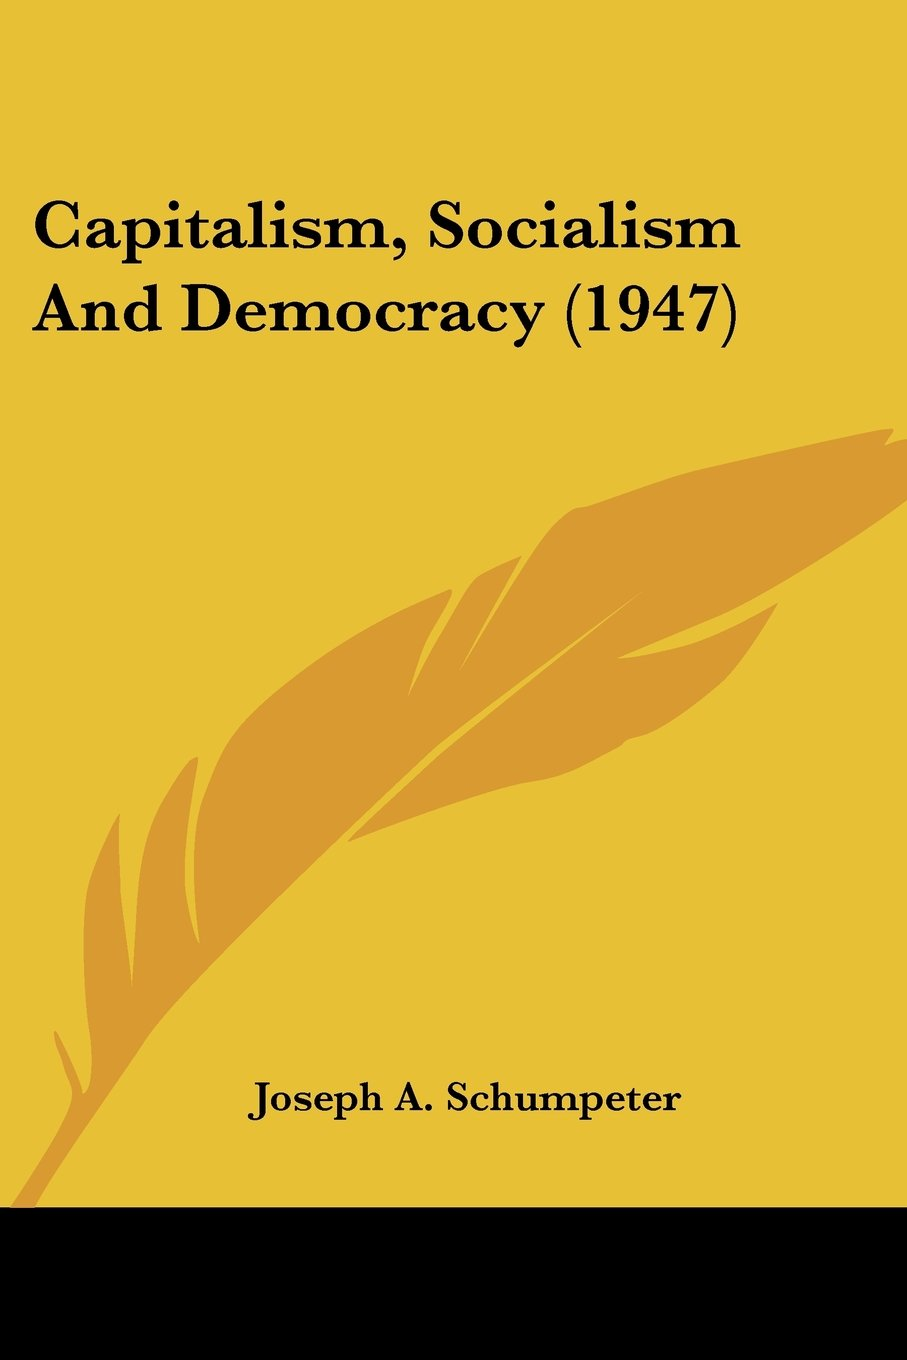 Capitalism Socialism And Democracy  Joseph A Schumpeter  Capitalism Socialism And Democracy  Joseph A Schumpeter   Amazoncom Books Book Report Help also Writer Services  High School Application Essay Examples